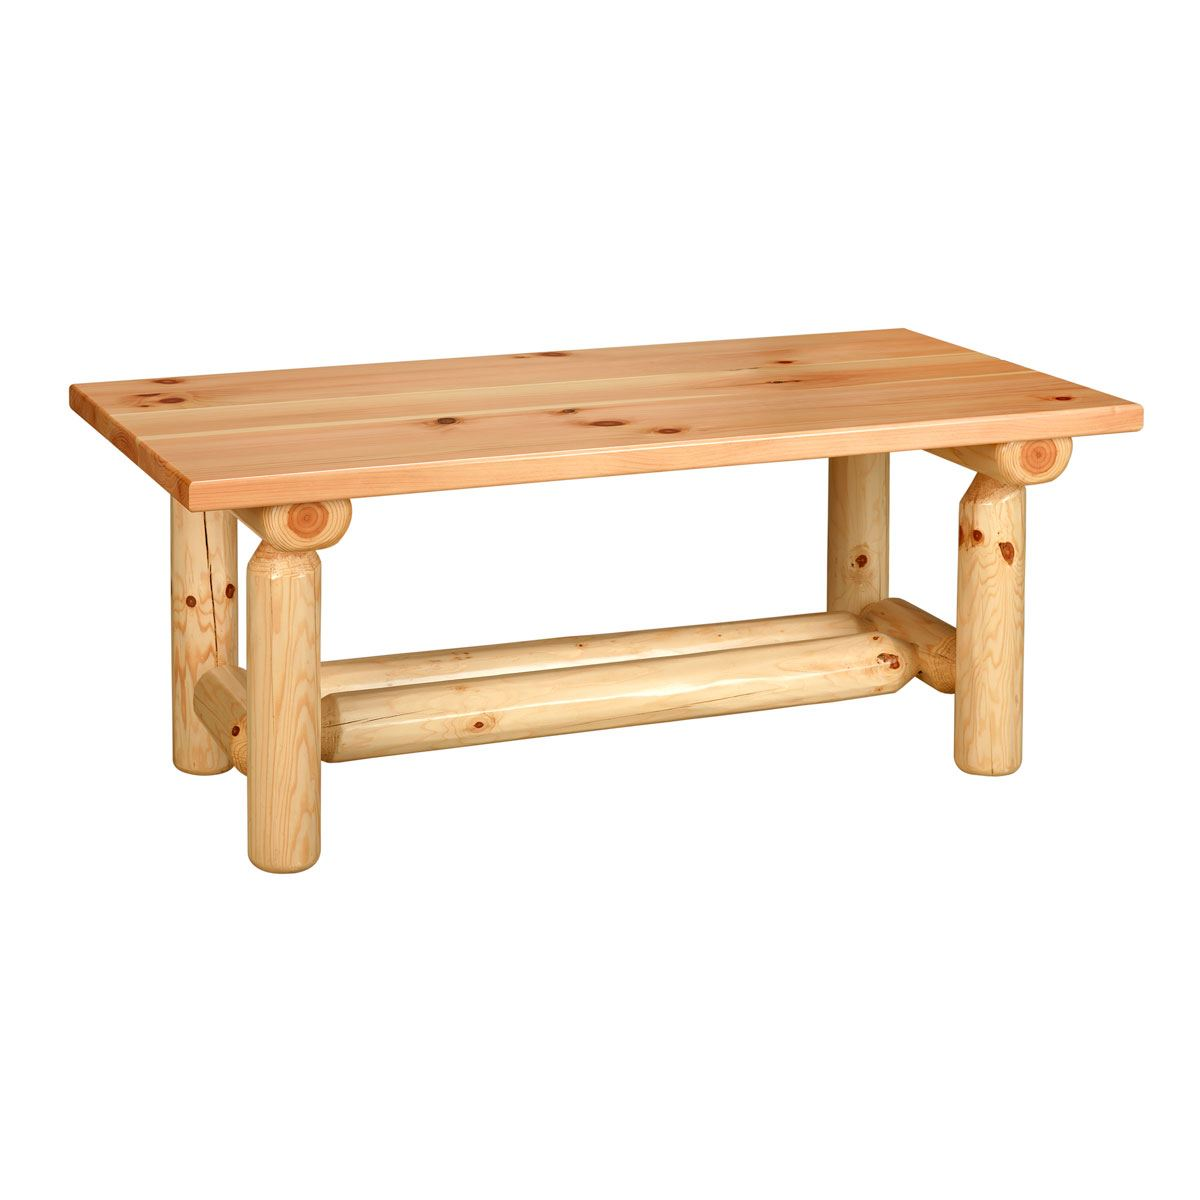 Rustic log pine coffee table custom dining furniture for Rustic coffee table